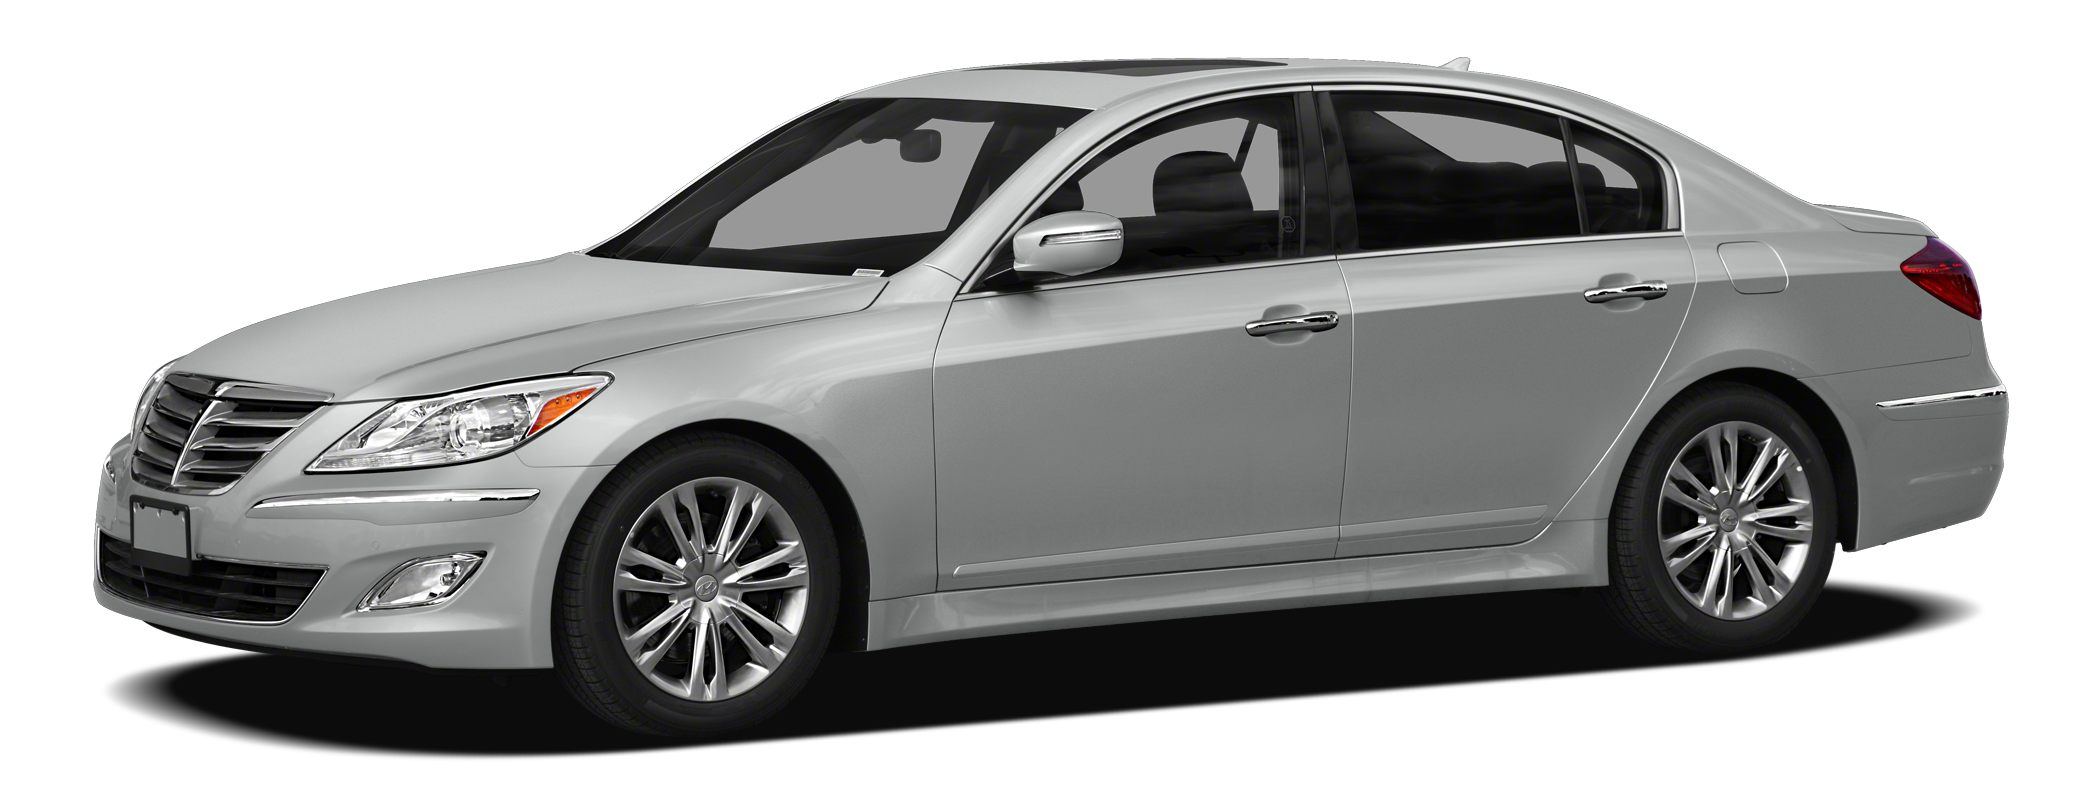 2012 Hyundai Genesis 38 WE SELL OUR VEHICLES AT WHOLESALE PRICES AND STAND BEHIND OUR CARS